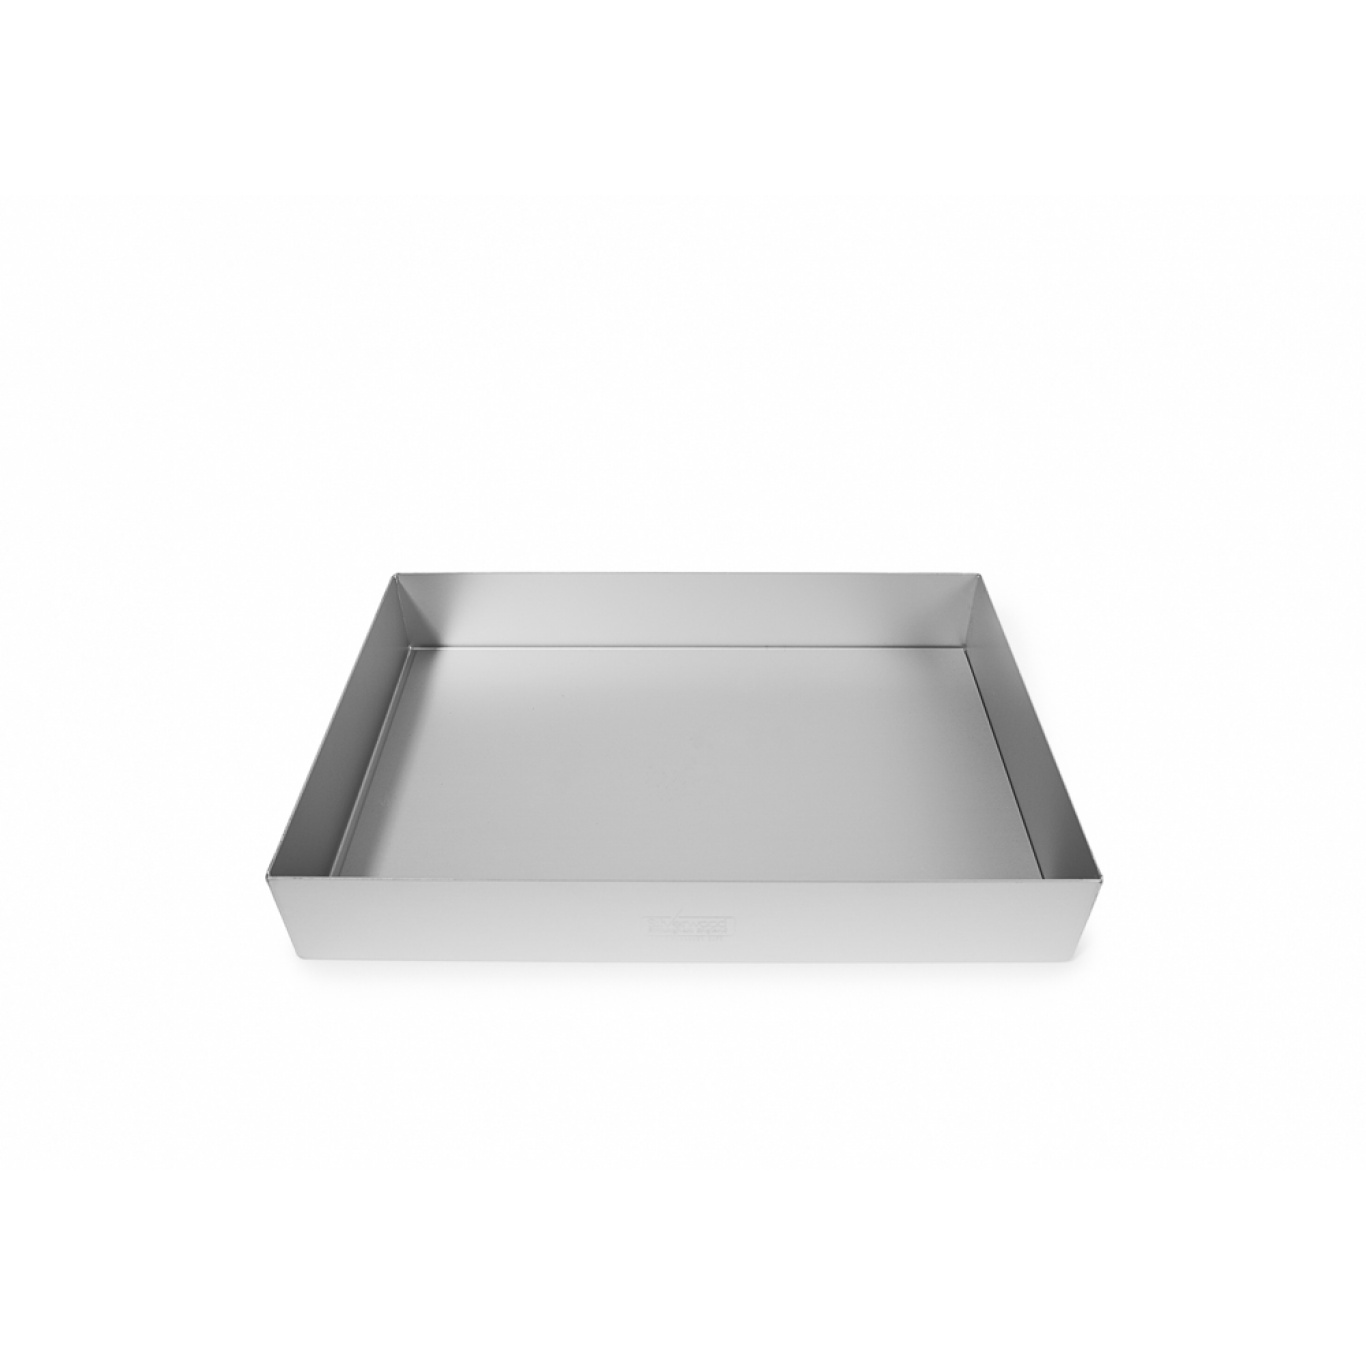 Image of Silverwood Traybake Pan Loose Base 13 x9ins